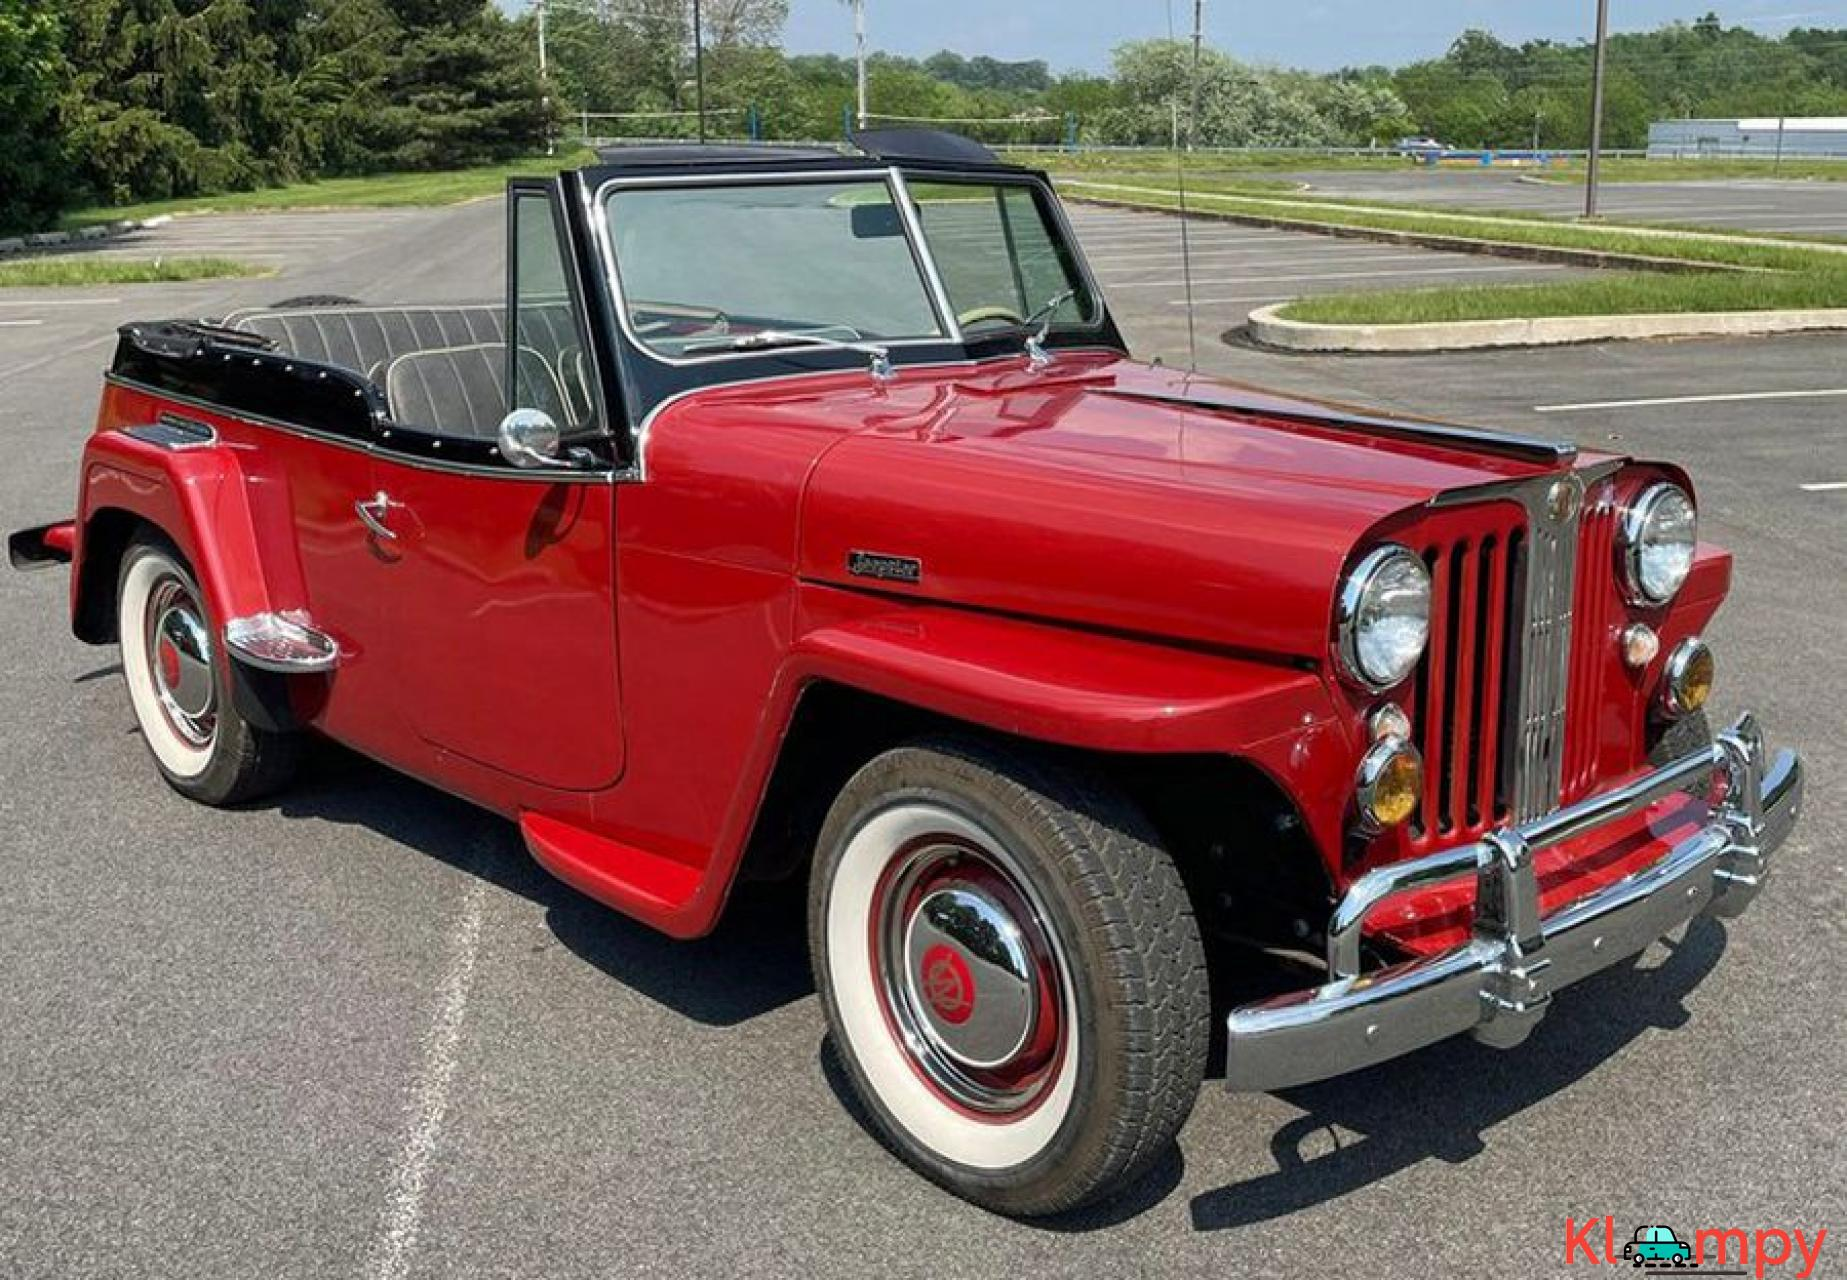 1948 Willys Jeepster Convertible GM 2.5 liter 4 cyl - 1/16